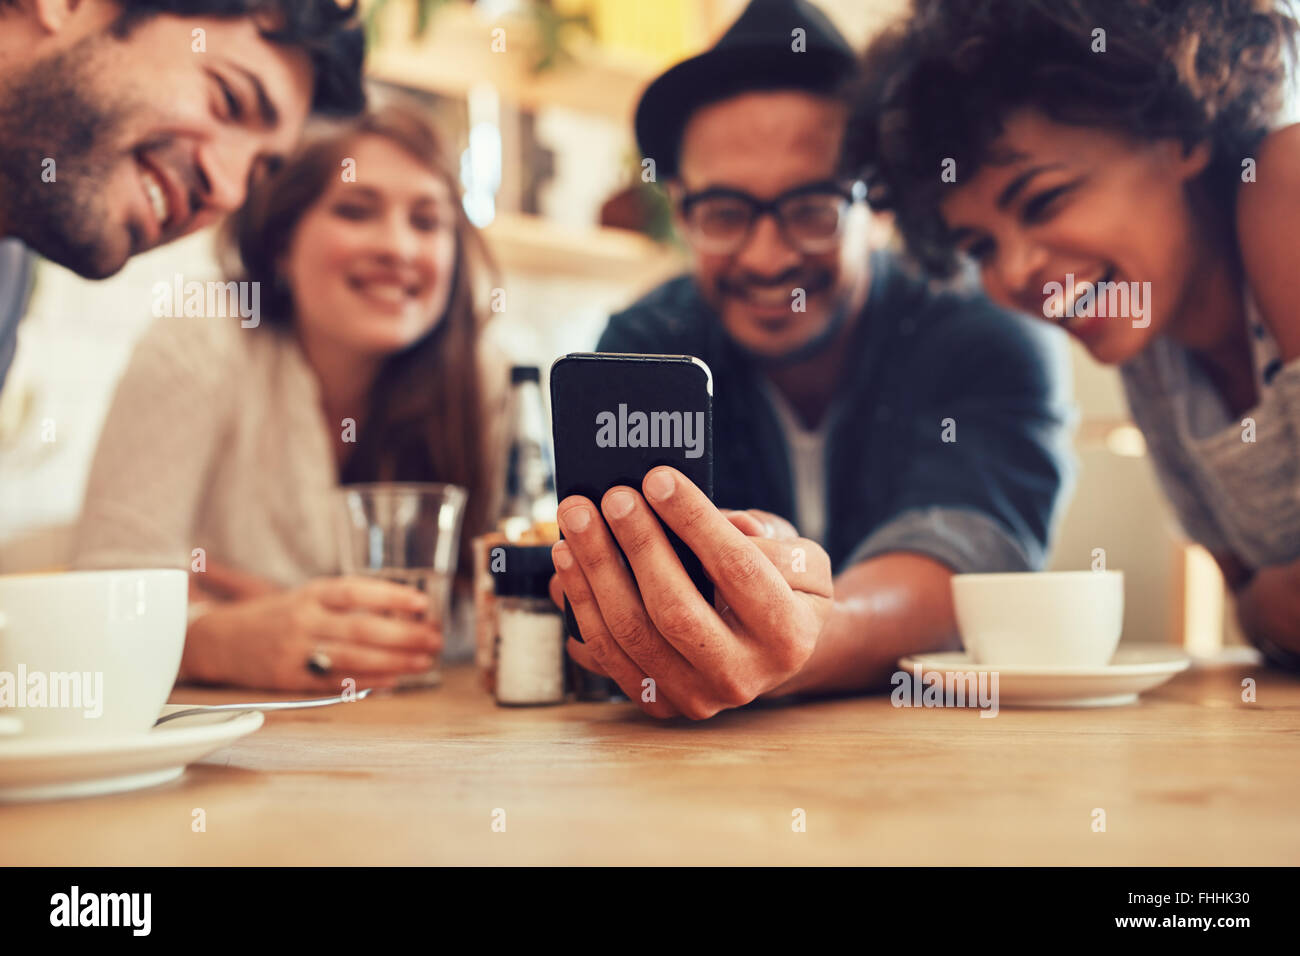 Group of friends having fun at the cafe and looking at smart phone. Man showing something to his friends sitting - Stock Image